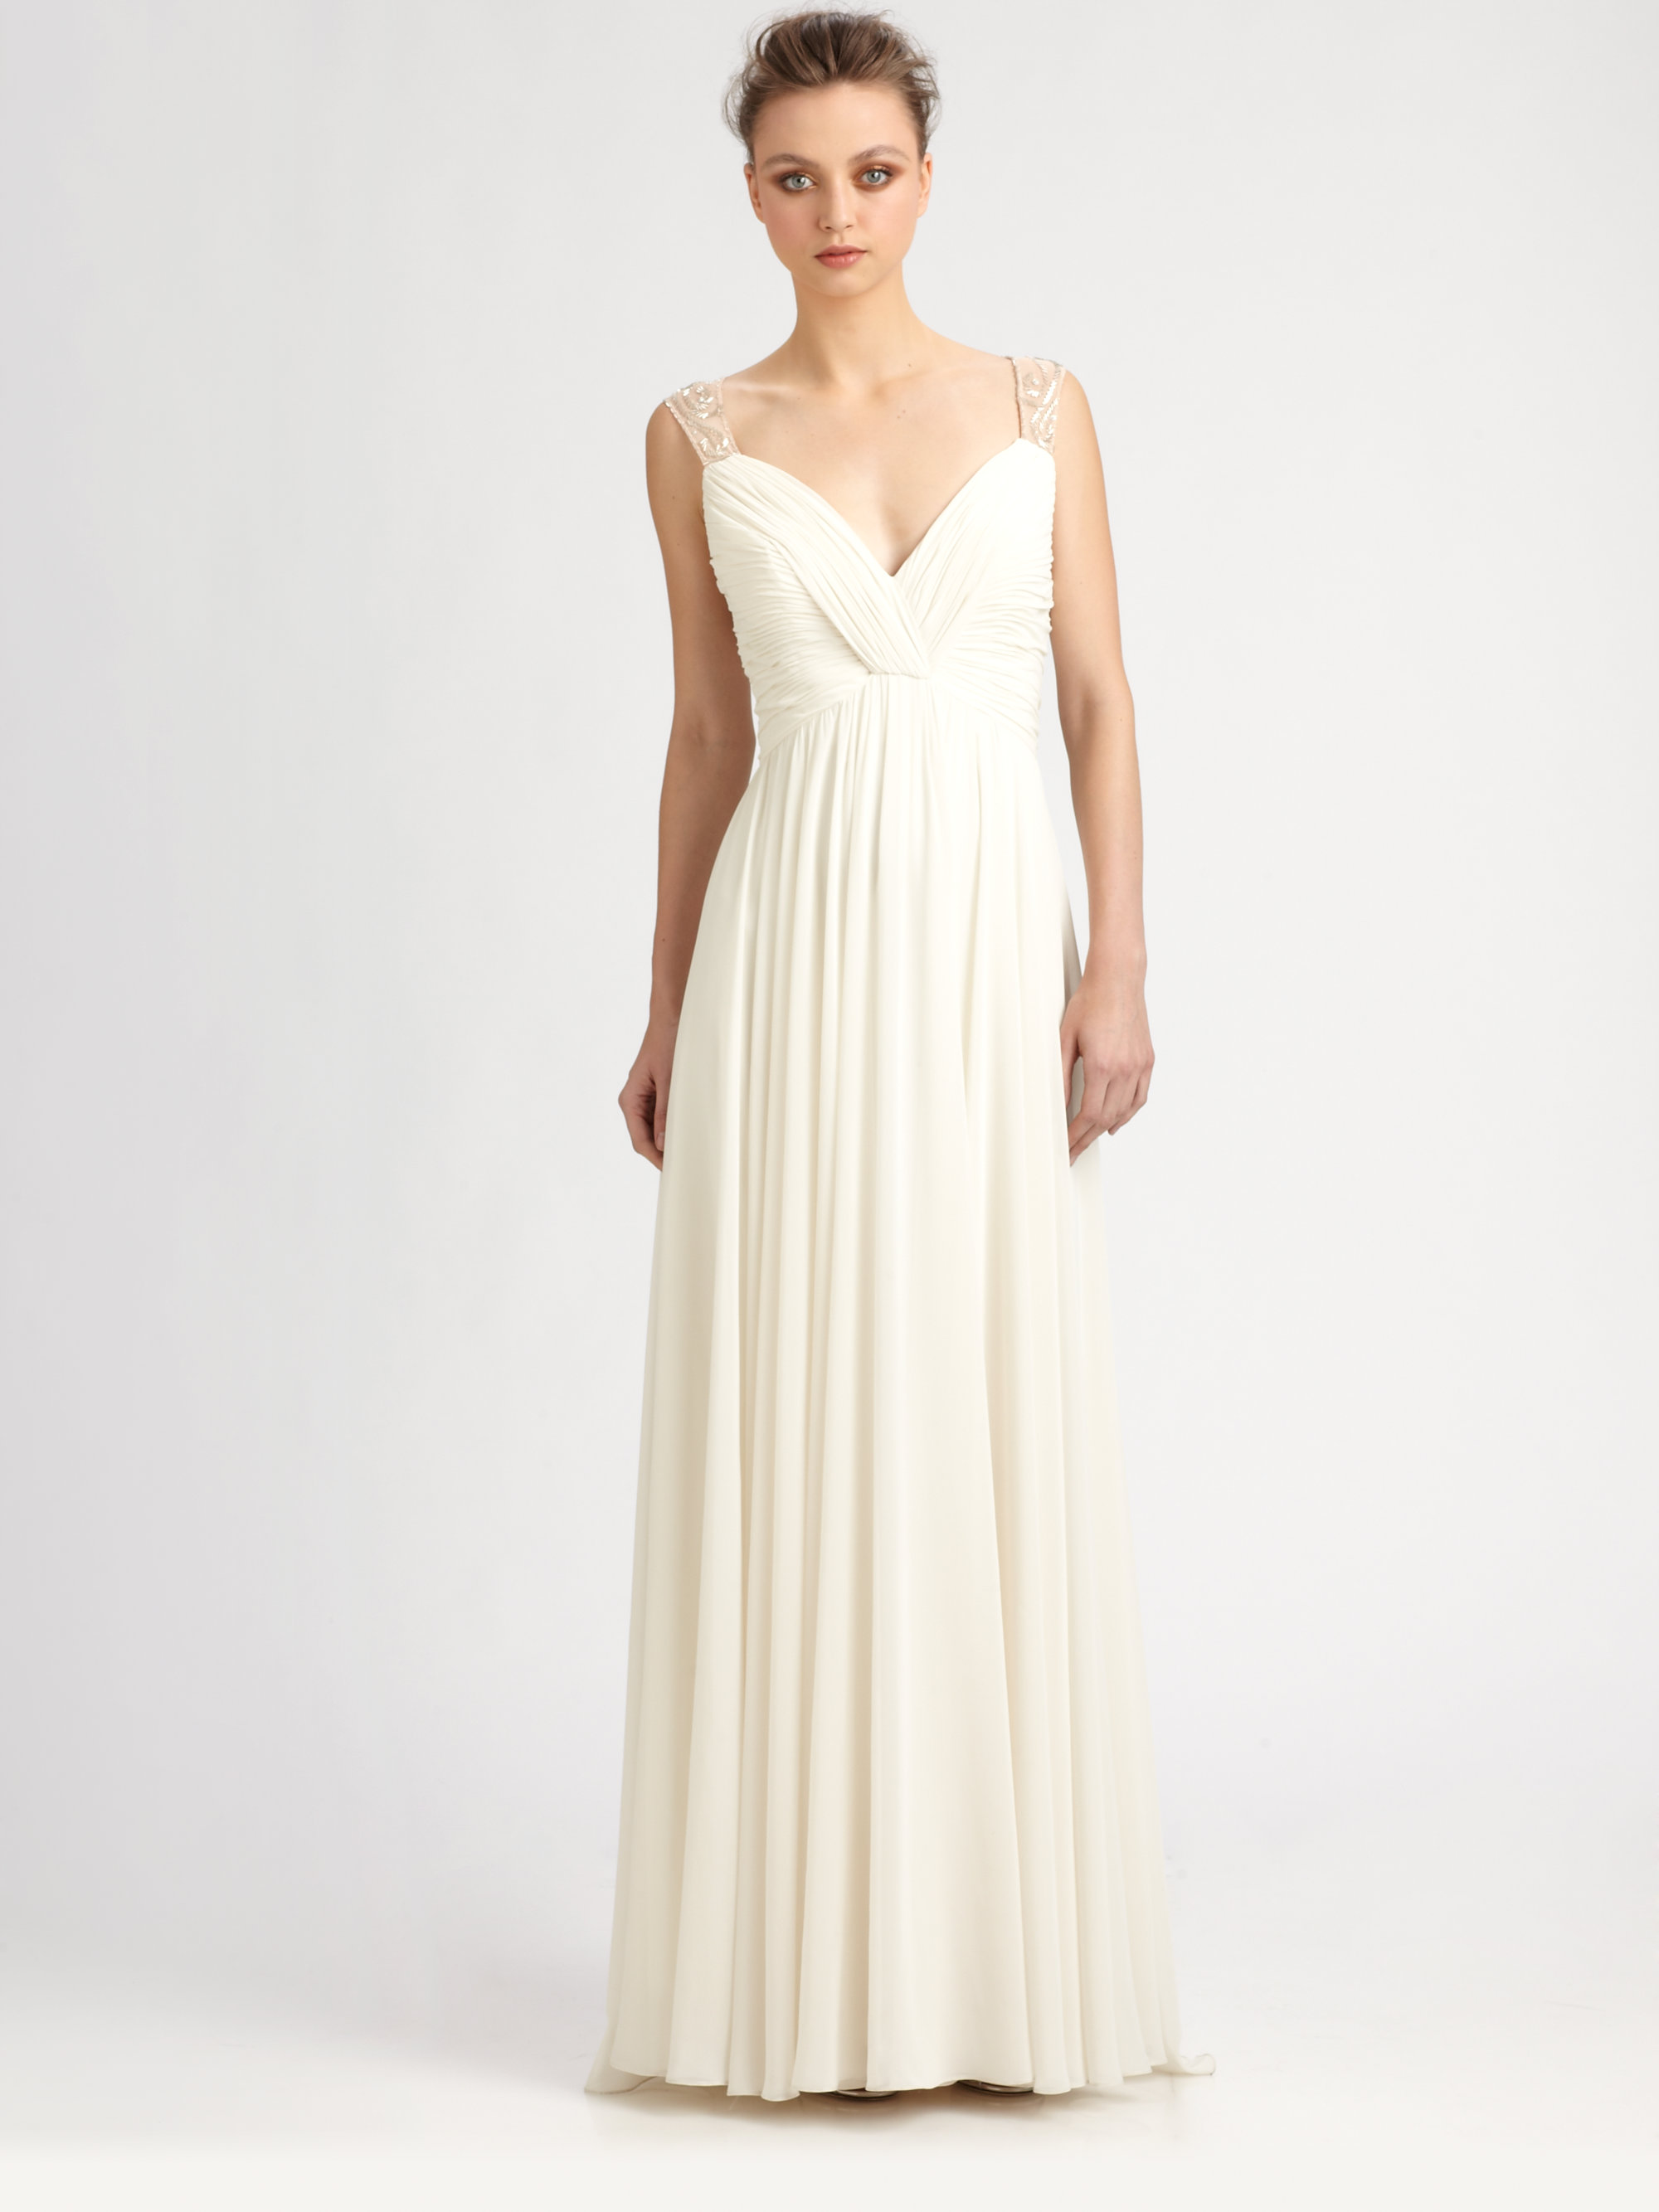 Lyst - Aidan Mattox Beaded Back Gown in White